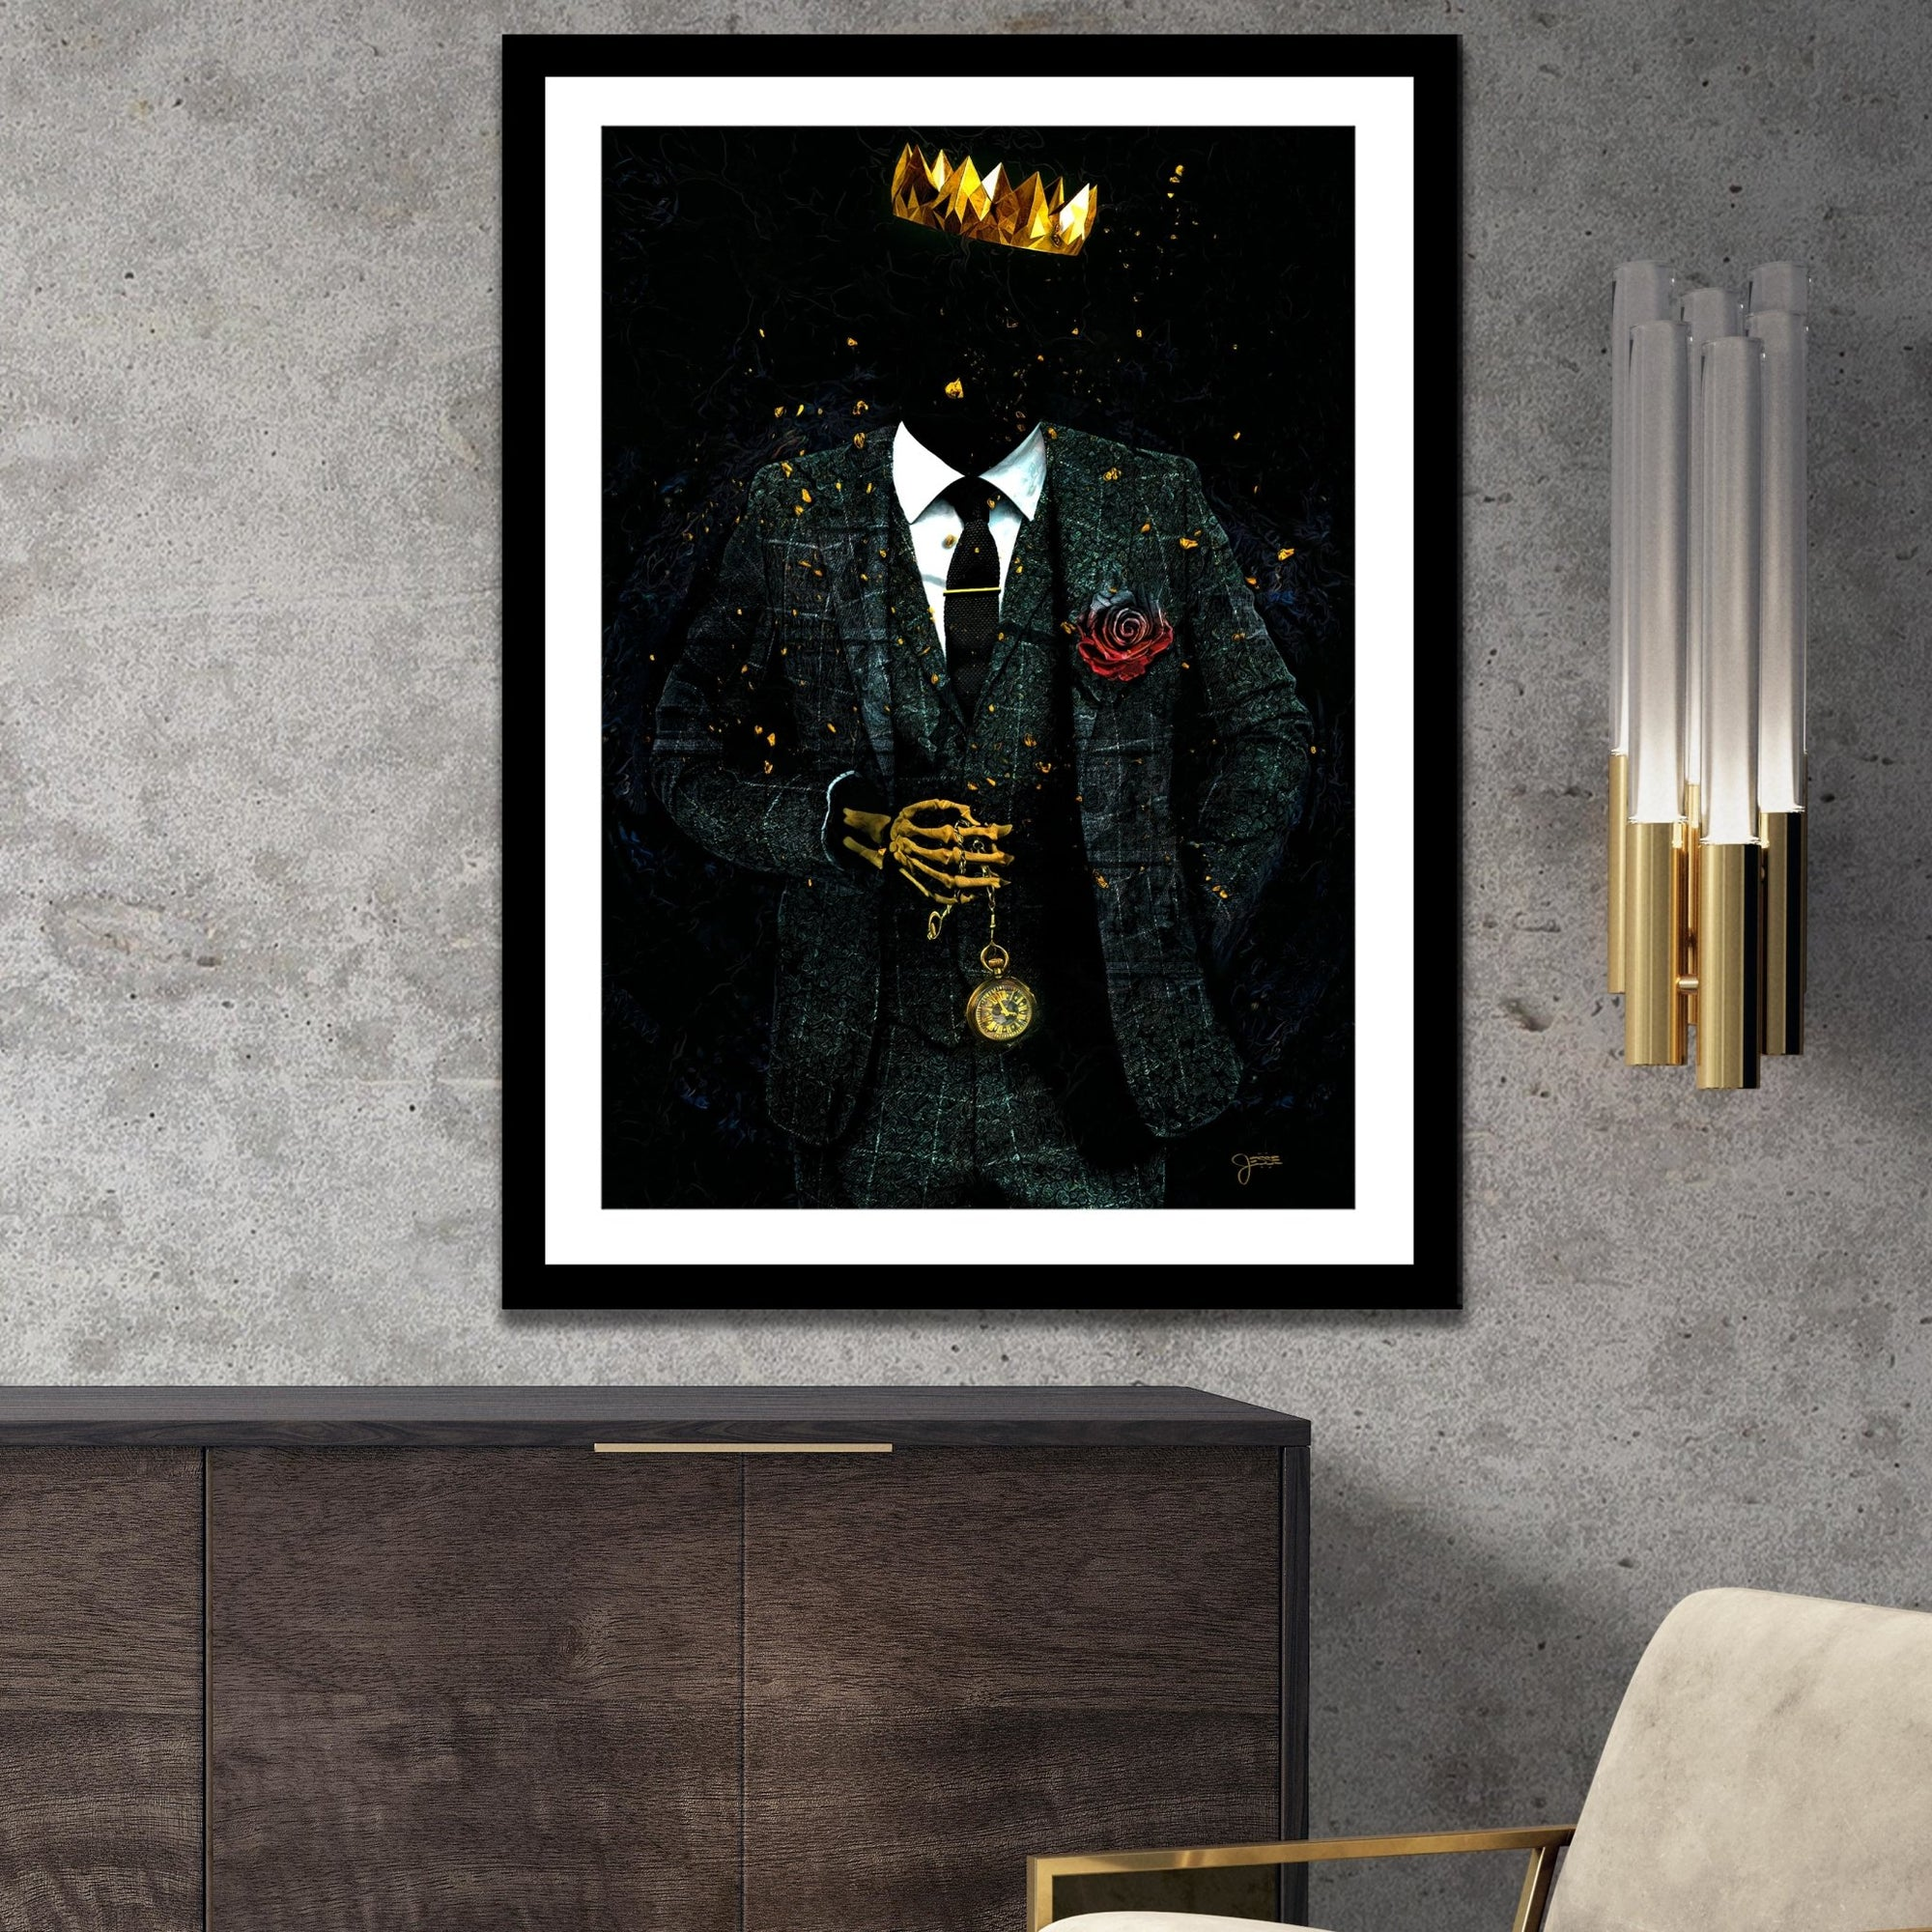 Time is King Semi-gloss Print - Thedopeart Prints